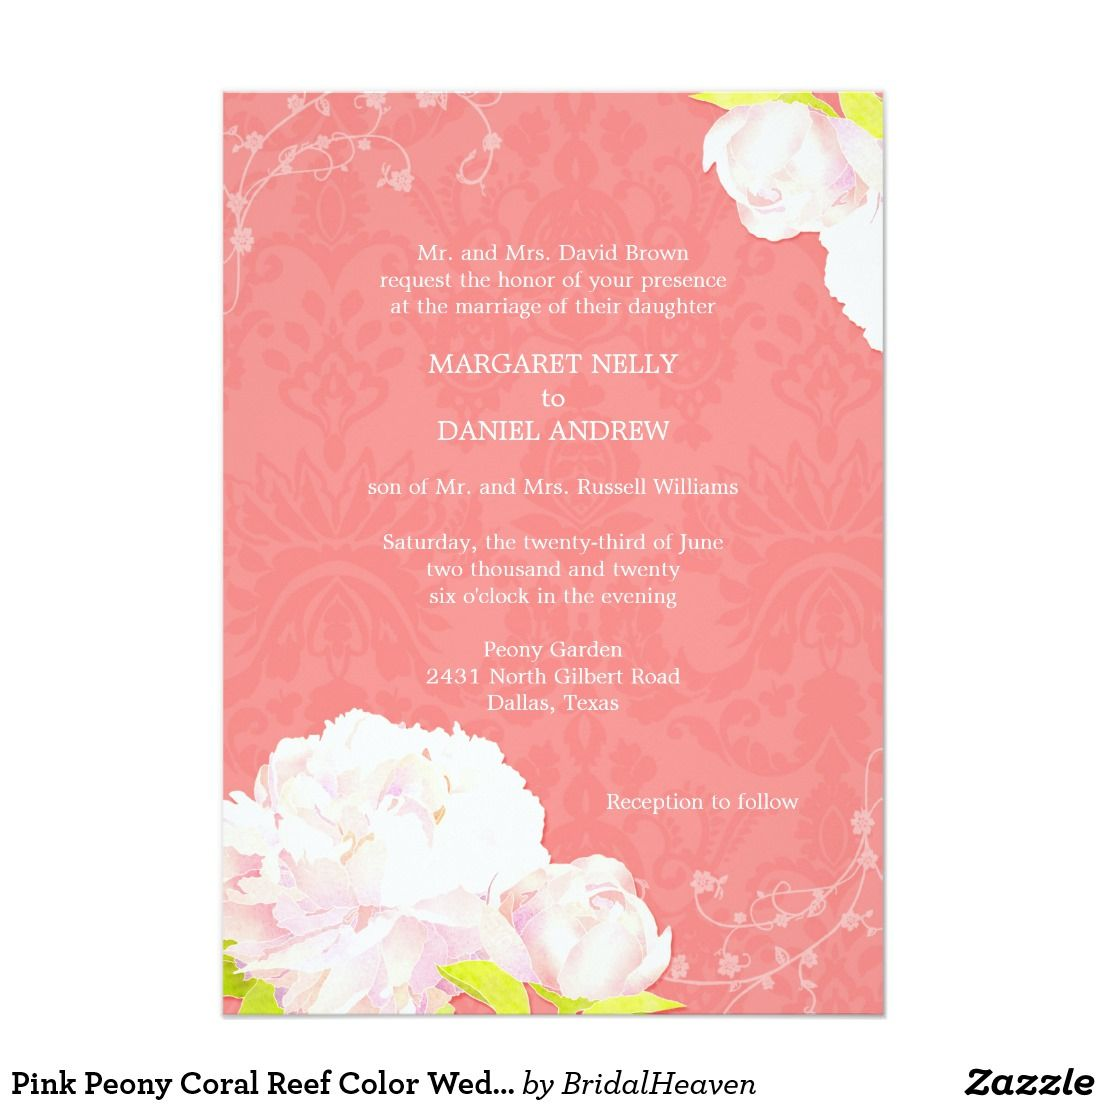 Pink Peony Coral Reef Color Wedding Invitation | Pink Peony Coral ...